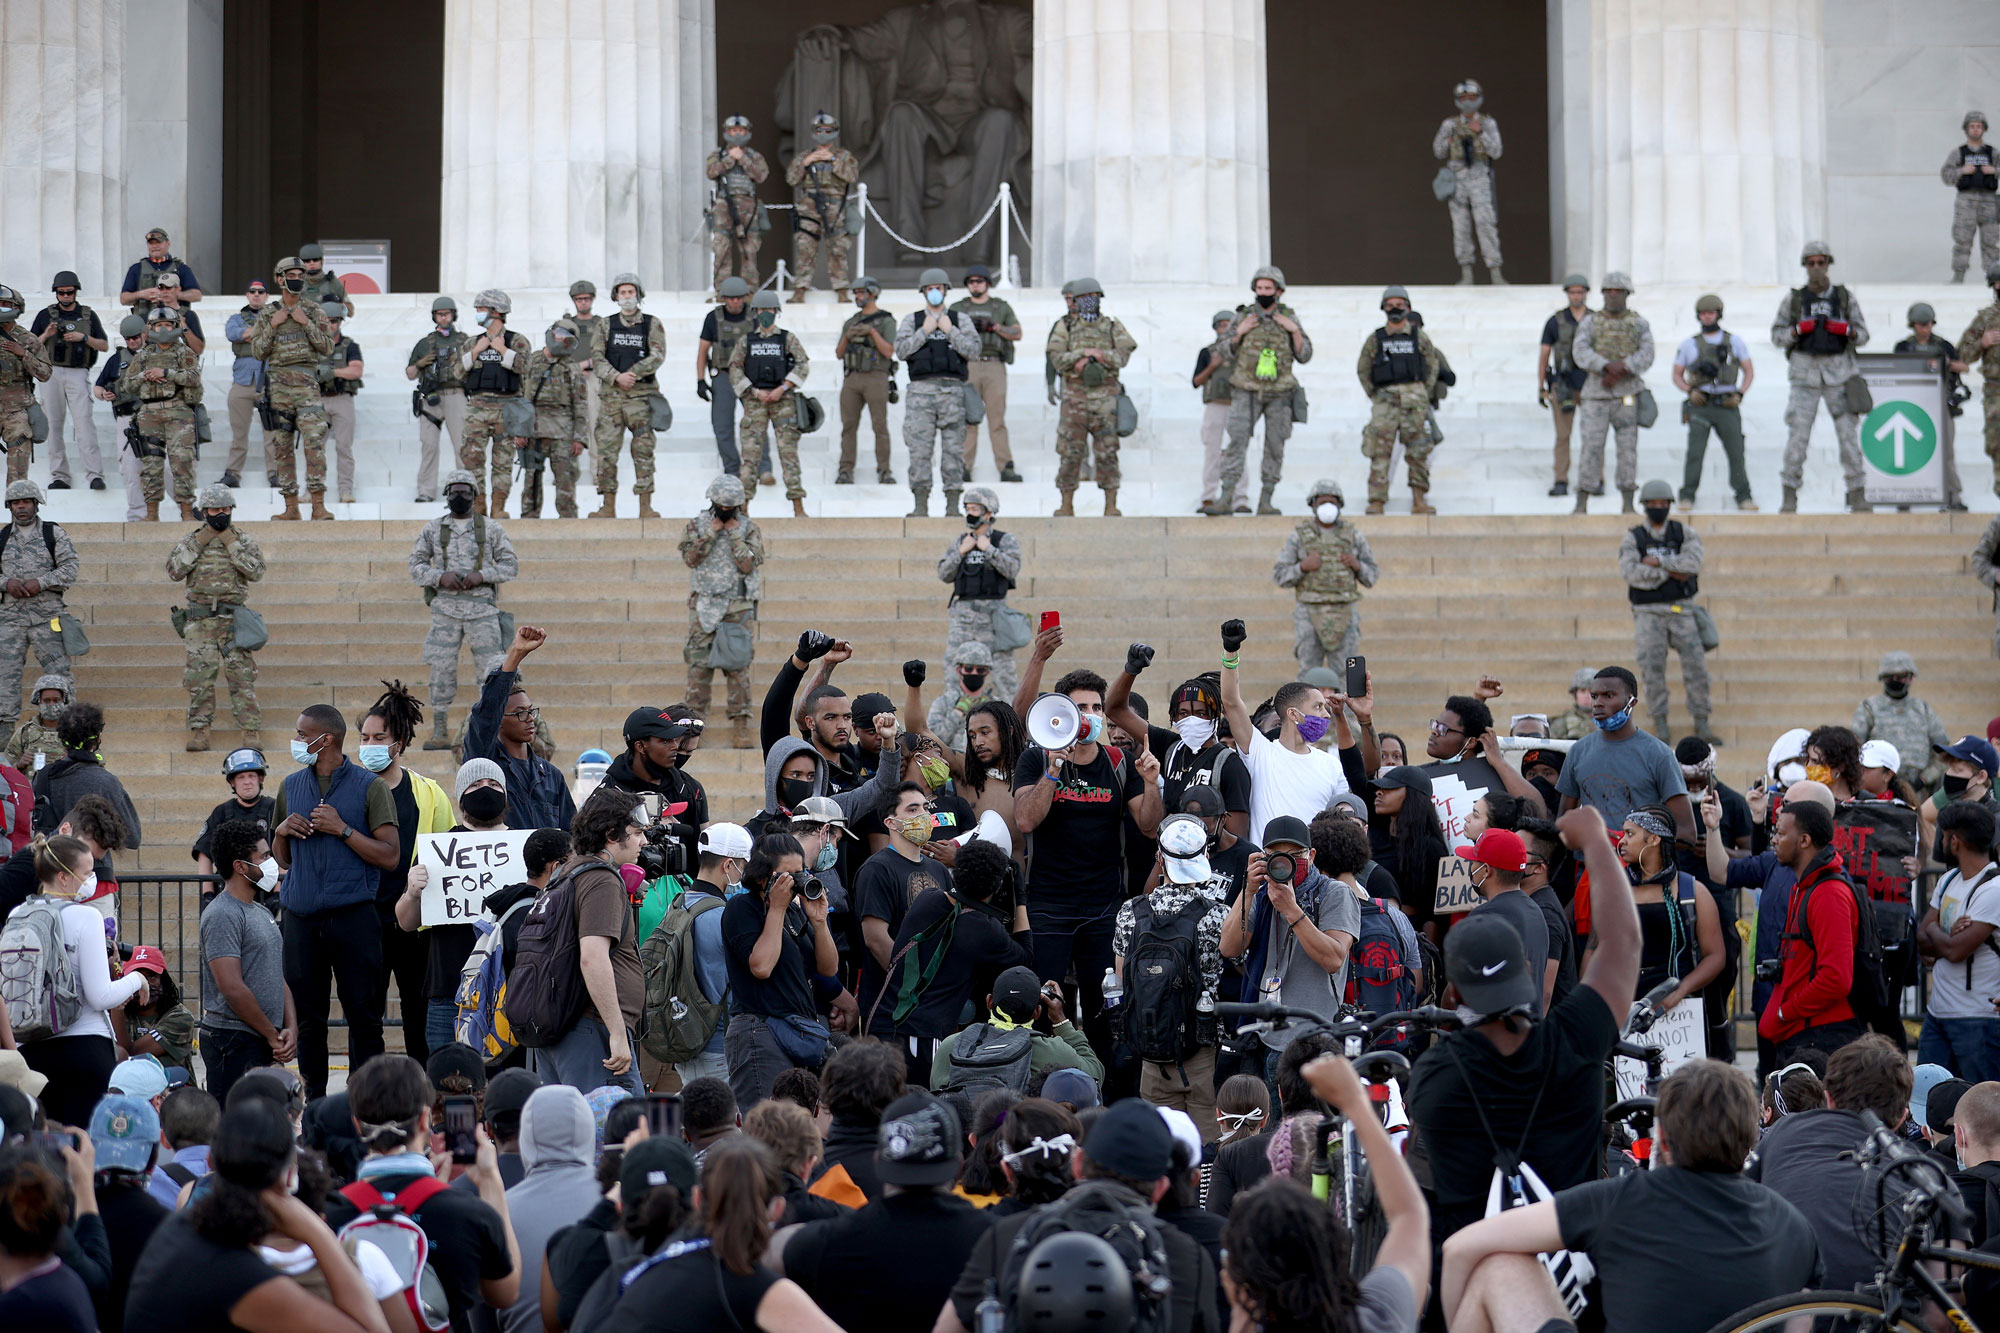 Members of the D.C. National Guard stand on the steps of the Lincoln Memorial monitoring demonstrators during a peaceful protest against police brutality and the death of George Floyd, on June 2 in Washington.